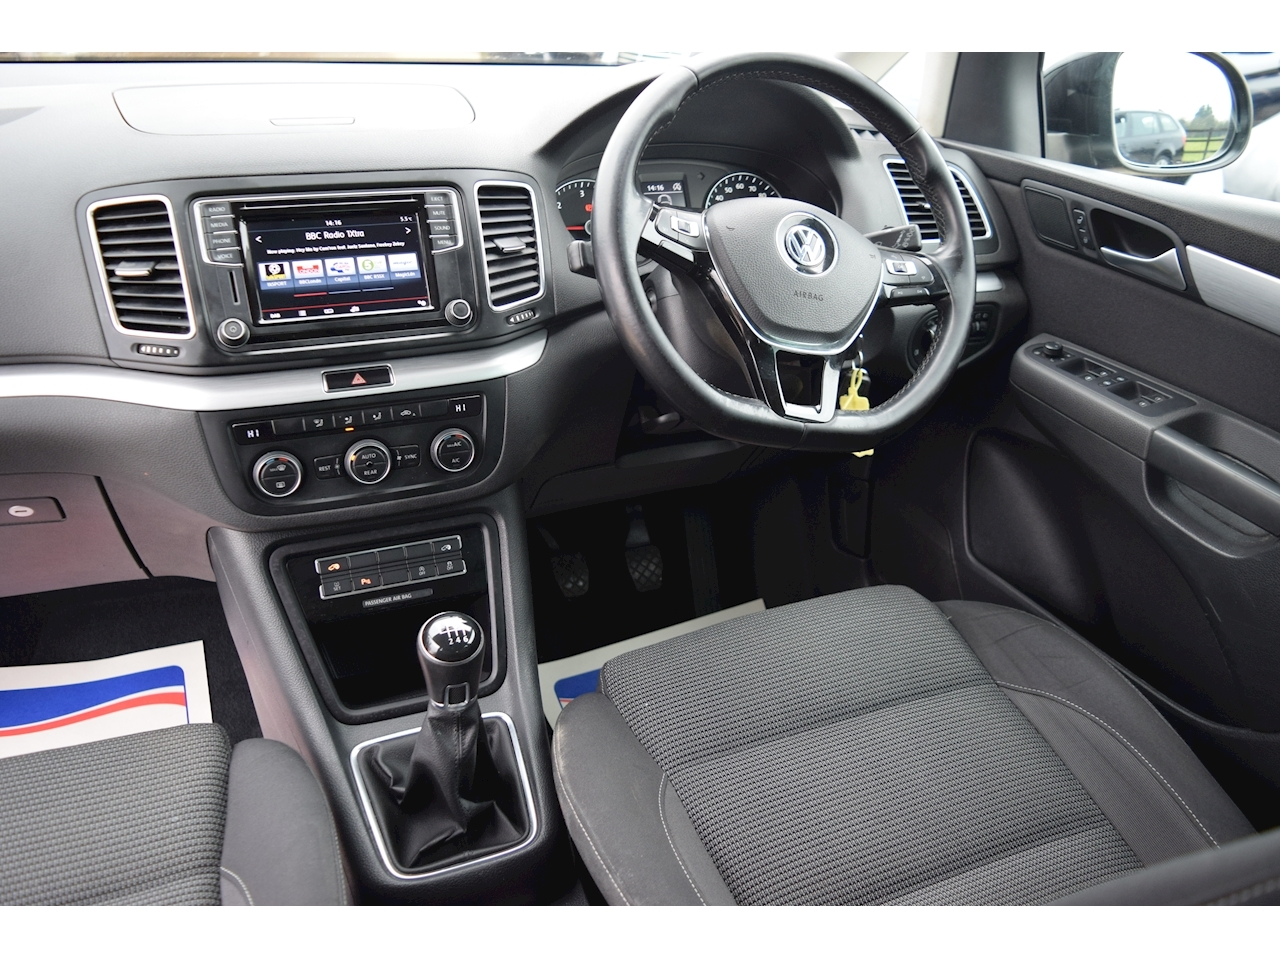 Volkswagen Sharan Se Tdi Bluemotion Technology Mpv 2.0 Manual Diesel